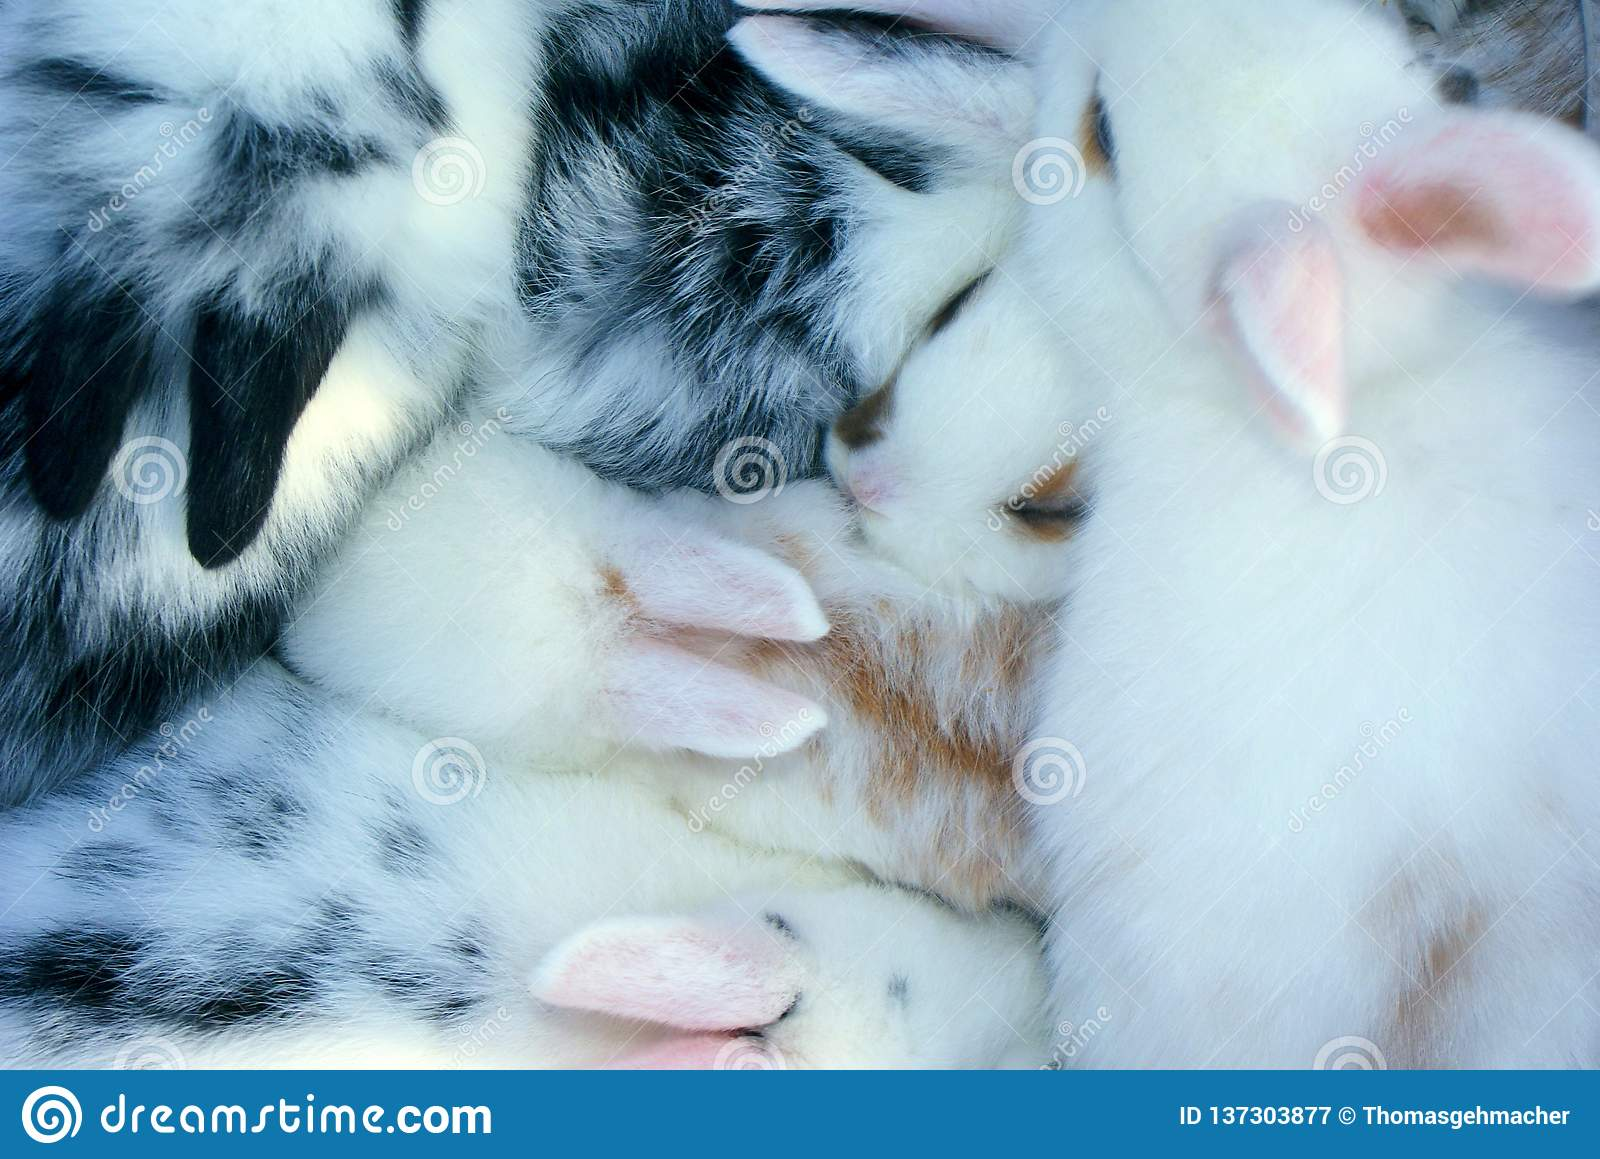 Close up of fluffy bunny babies nestling